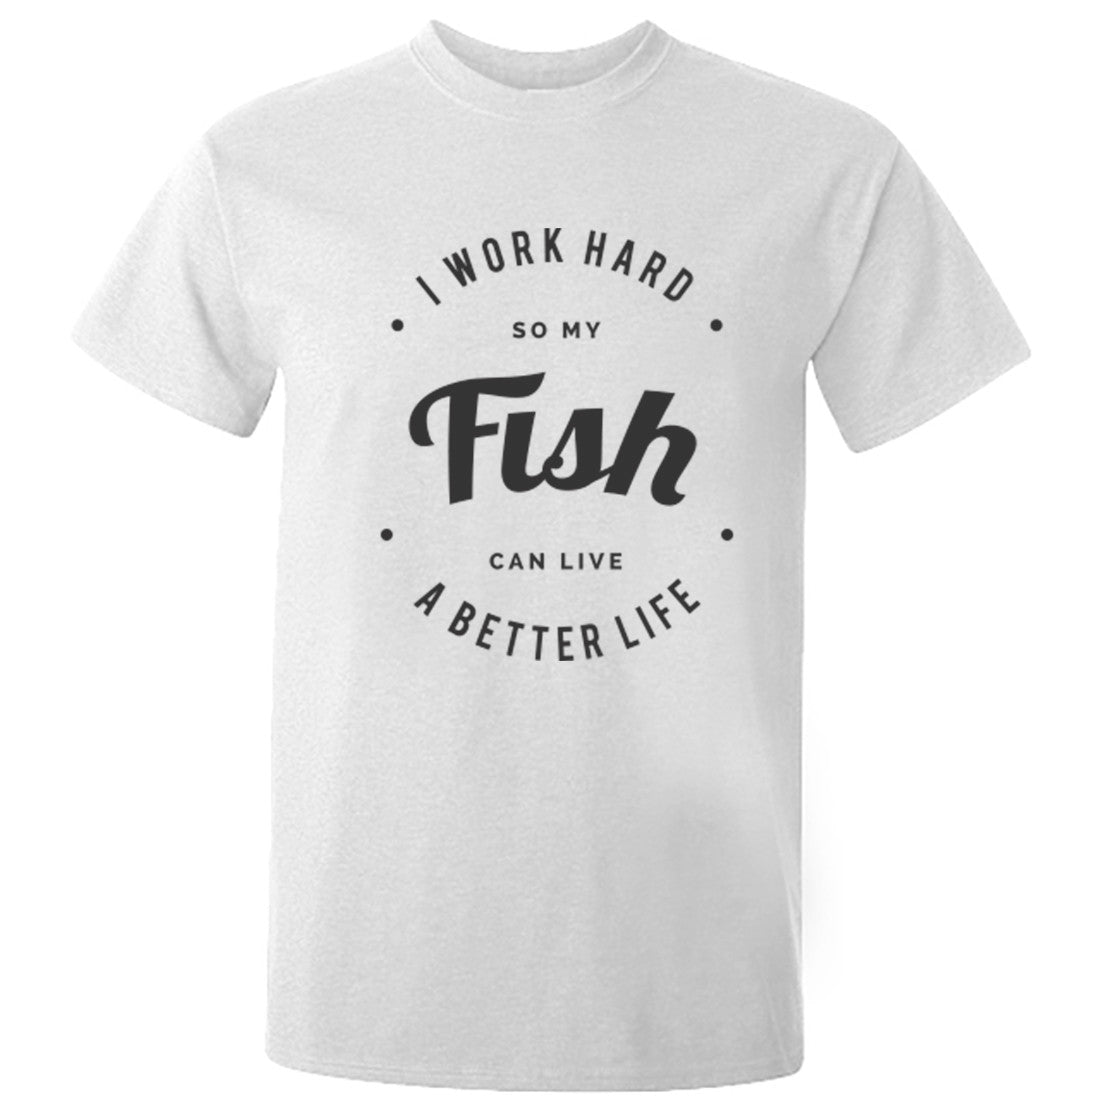 I Work Hard So My Fish Can Live A Better Life Unisex Fit T-Shirt K0435